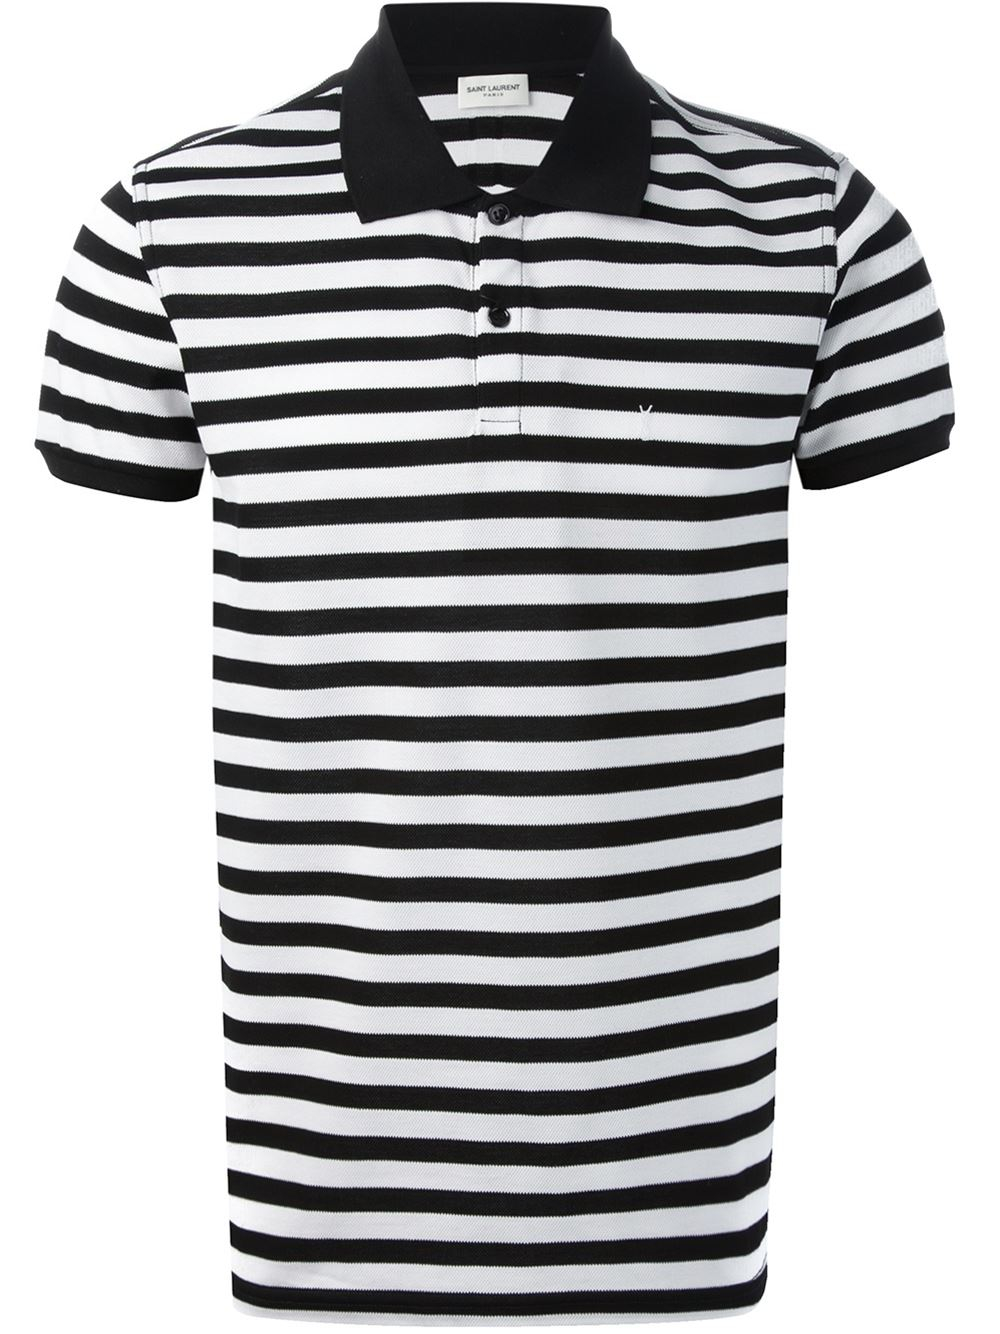 8258a0c68a97 Lyst - Saint Laurent Striped Polo Shirt in Black for Men